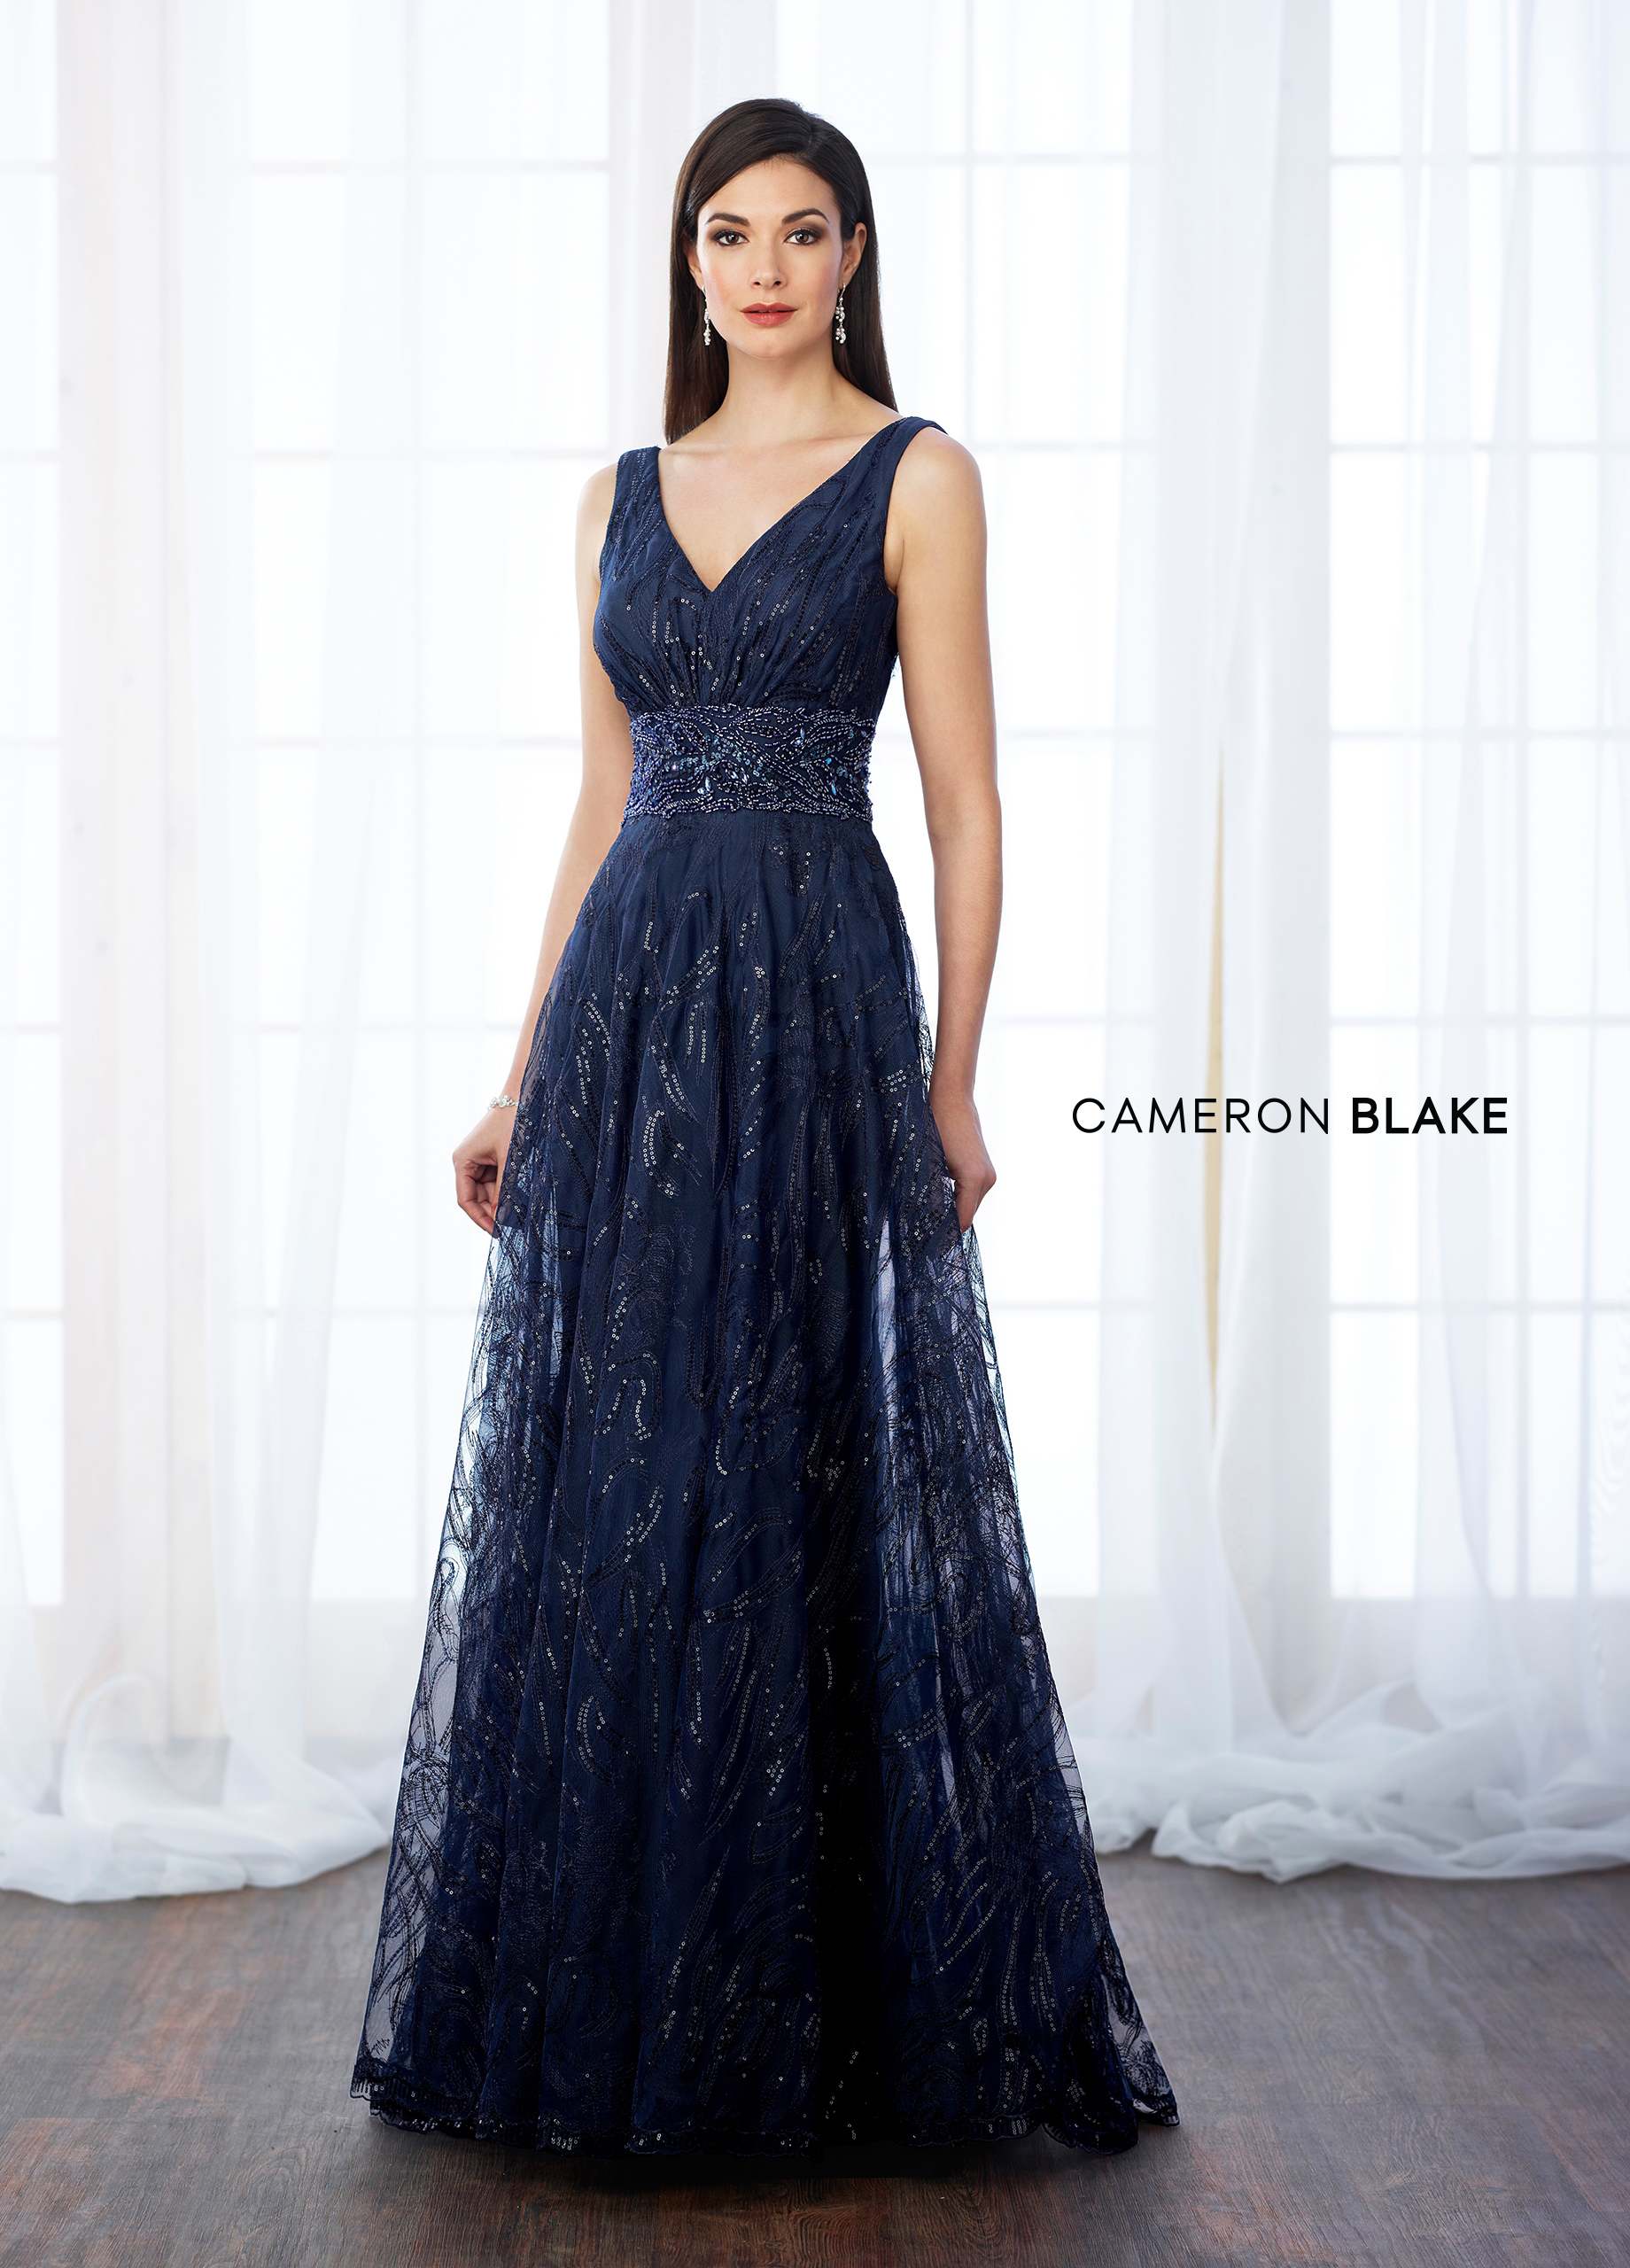 ee97353566bb Sleeveless sequin and tulle A-line gown with front and back V-necklines,  hand-beaded wide natural waistband, sweep train. Matching shawl included.